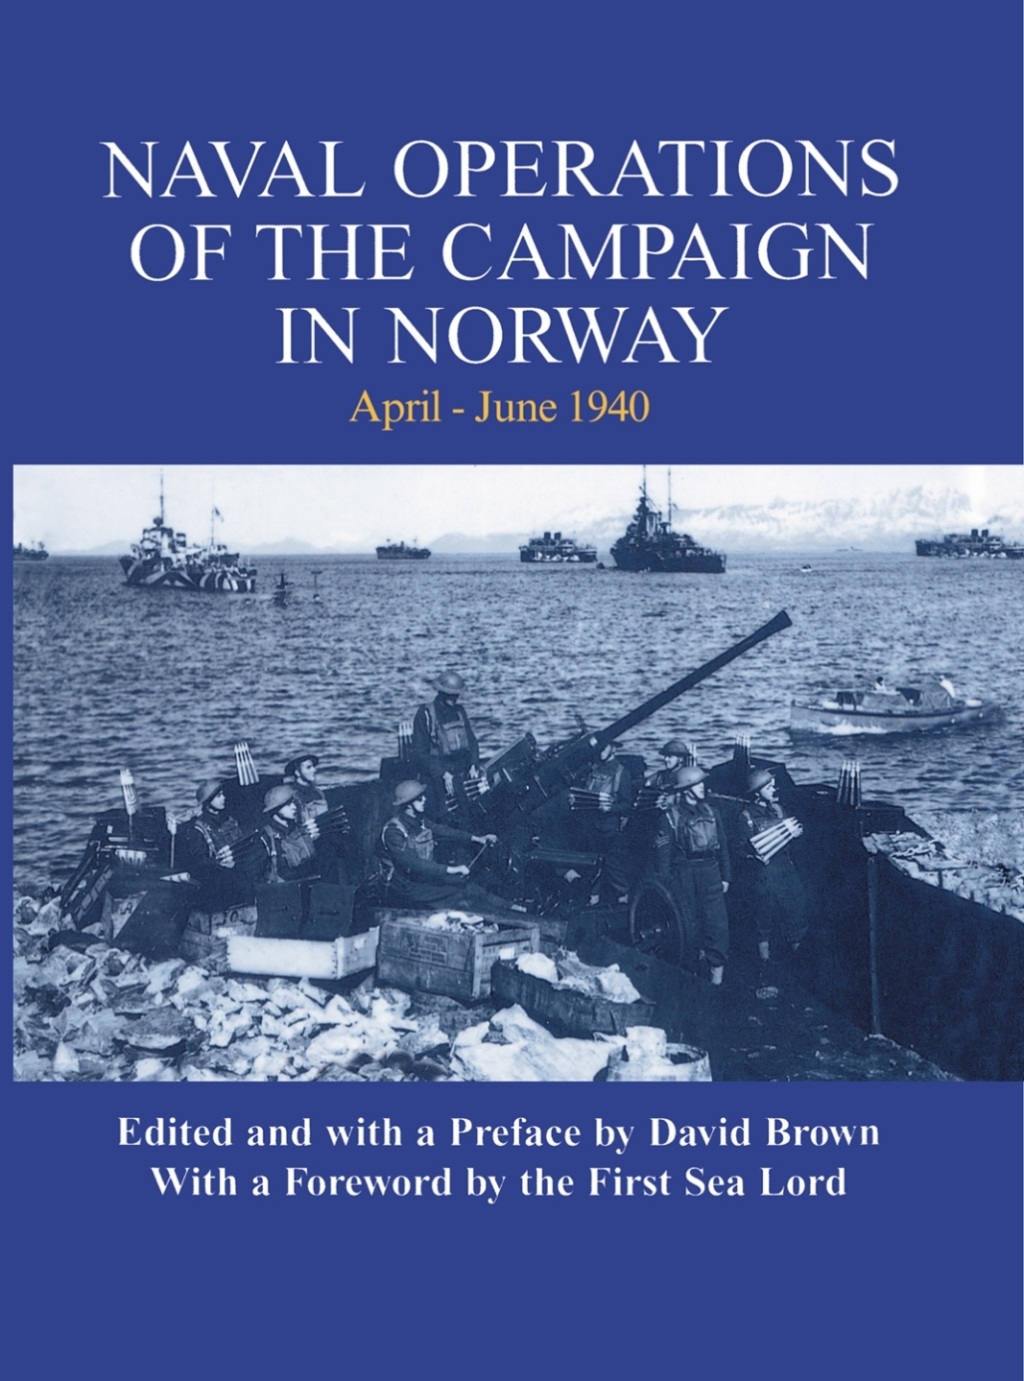 Naval Operations of the Campaign in Norway  April-June 1940 (eBook)